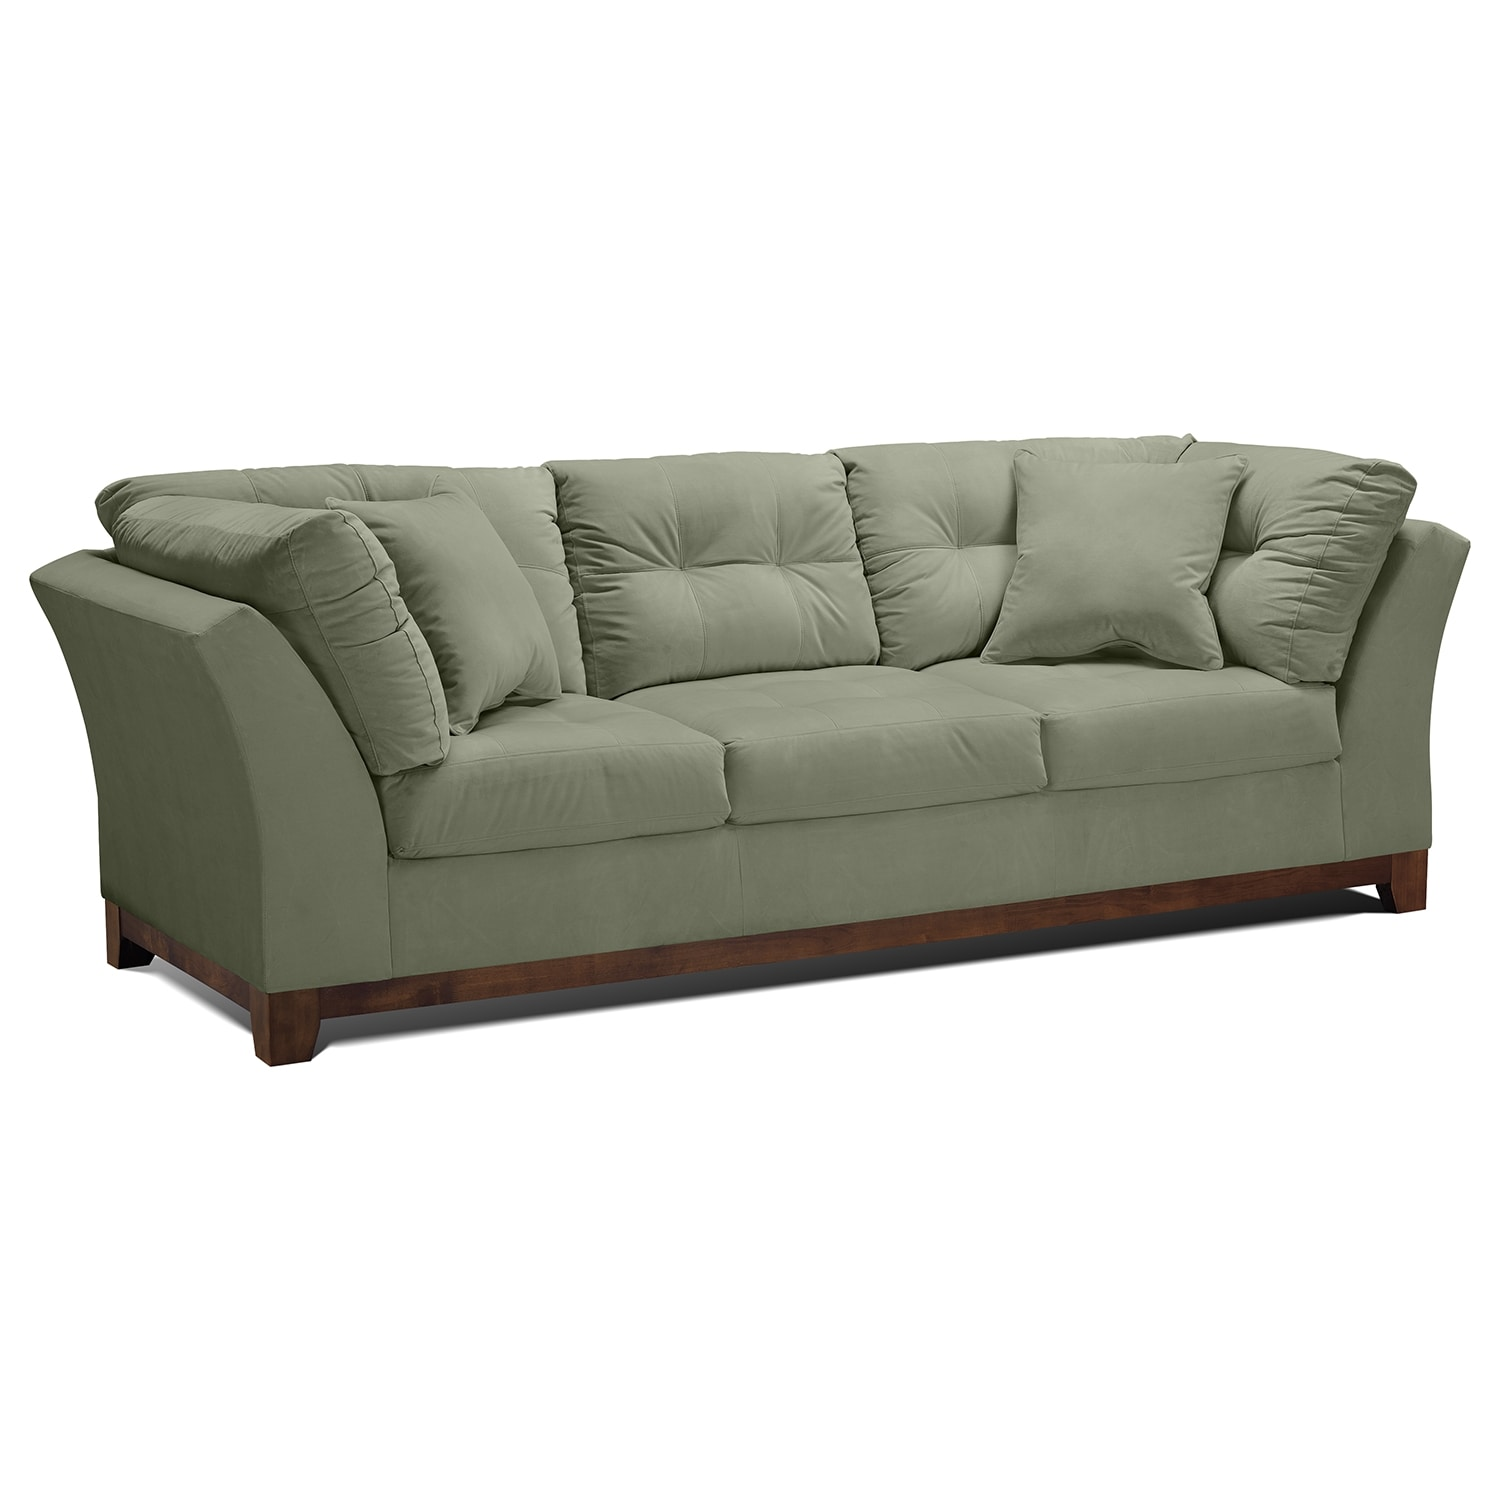 Solace Spa Upholstery Sofa Value City Furniture